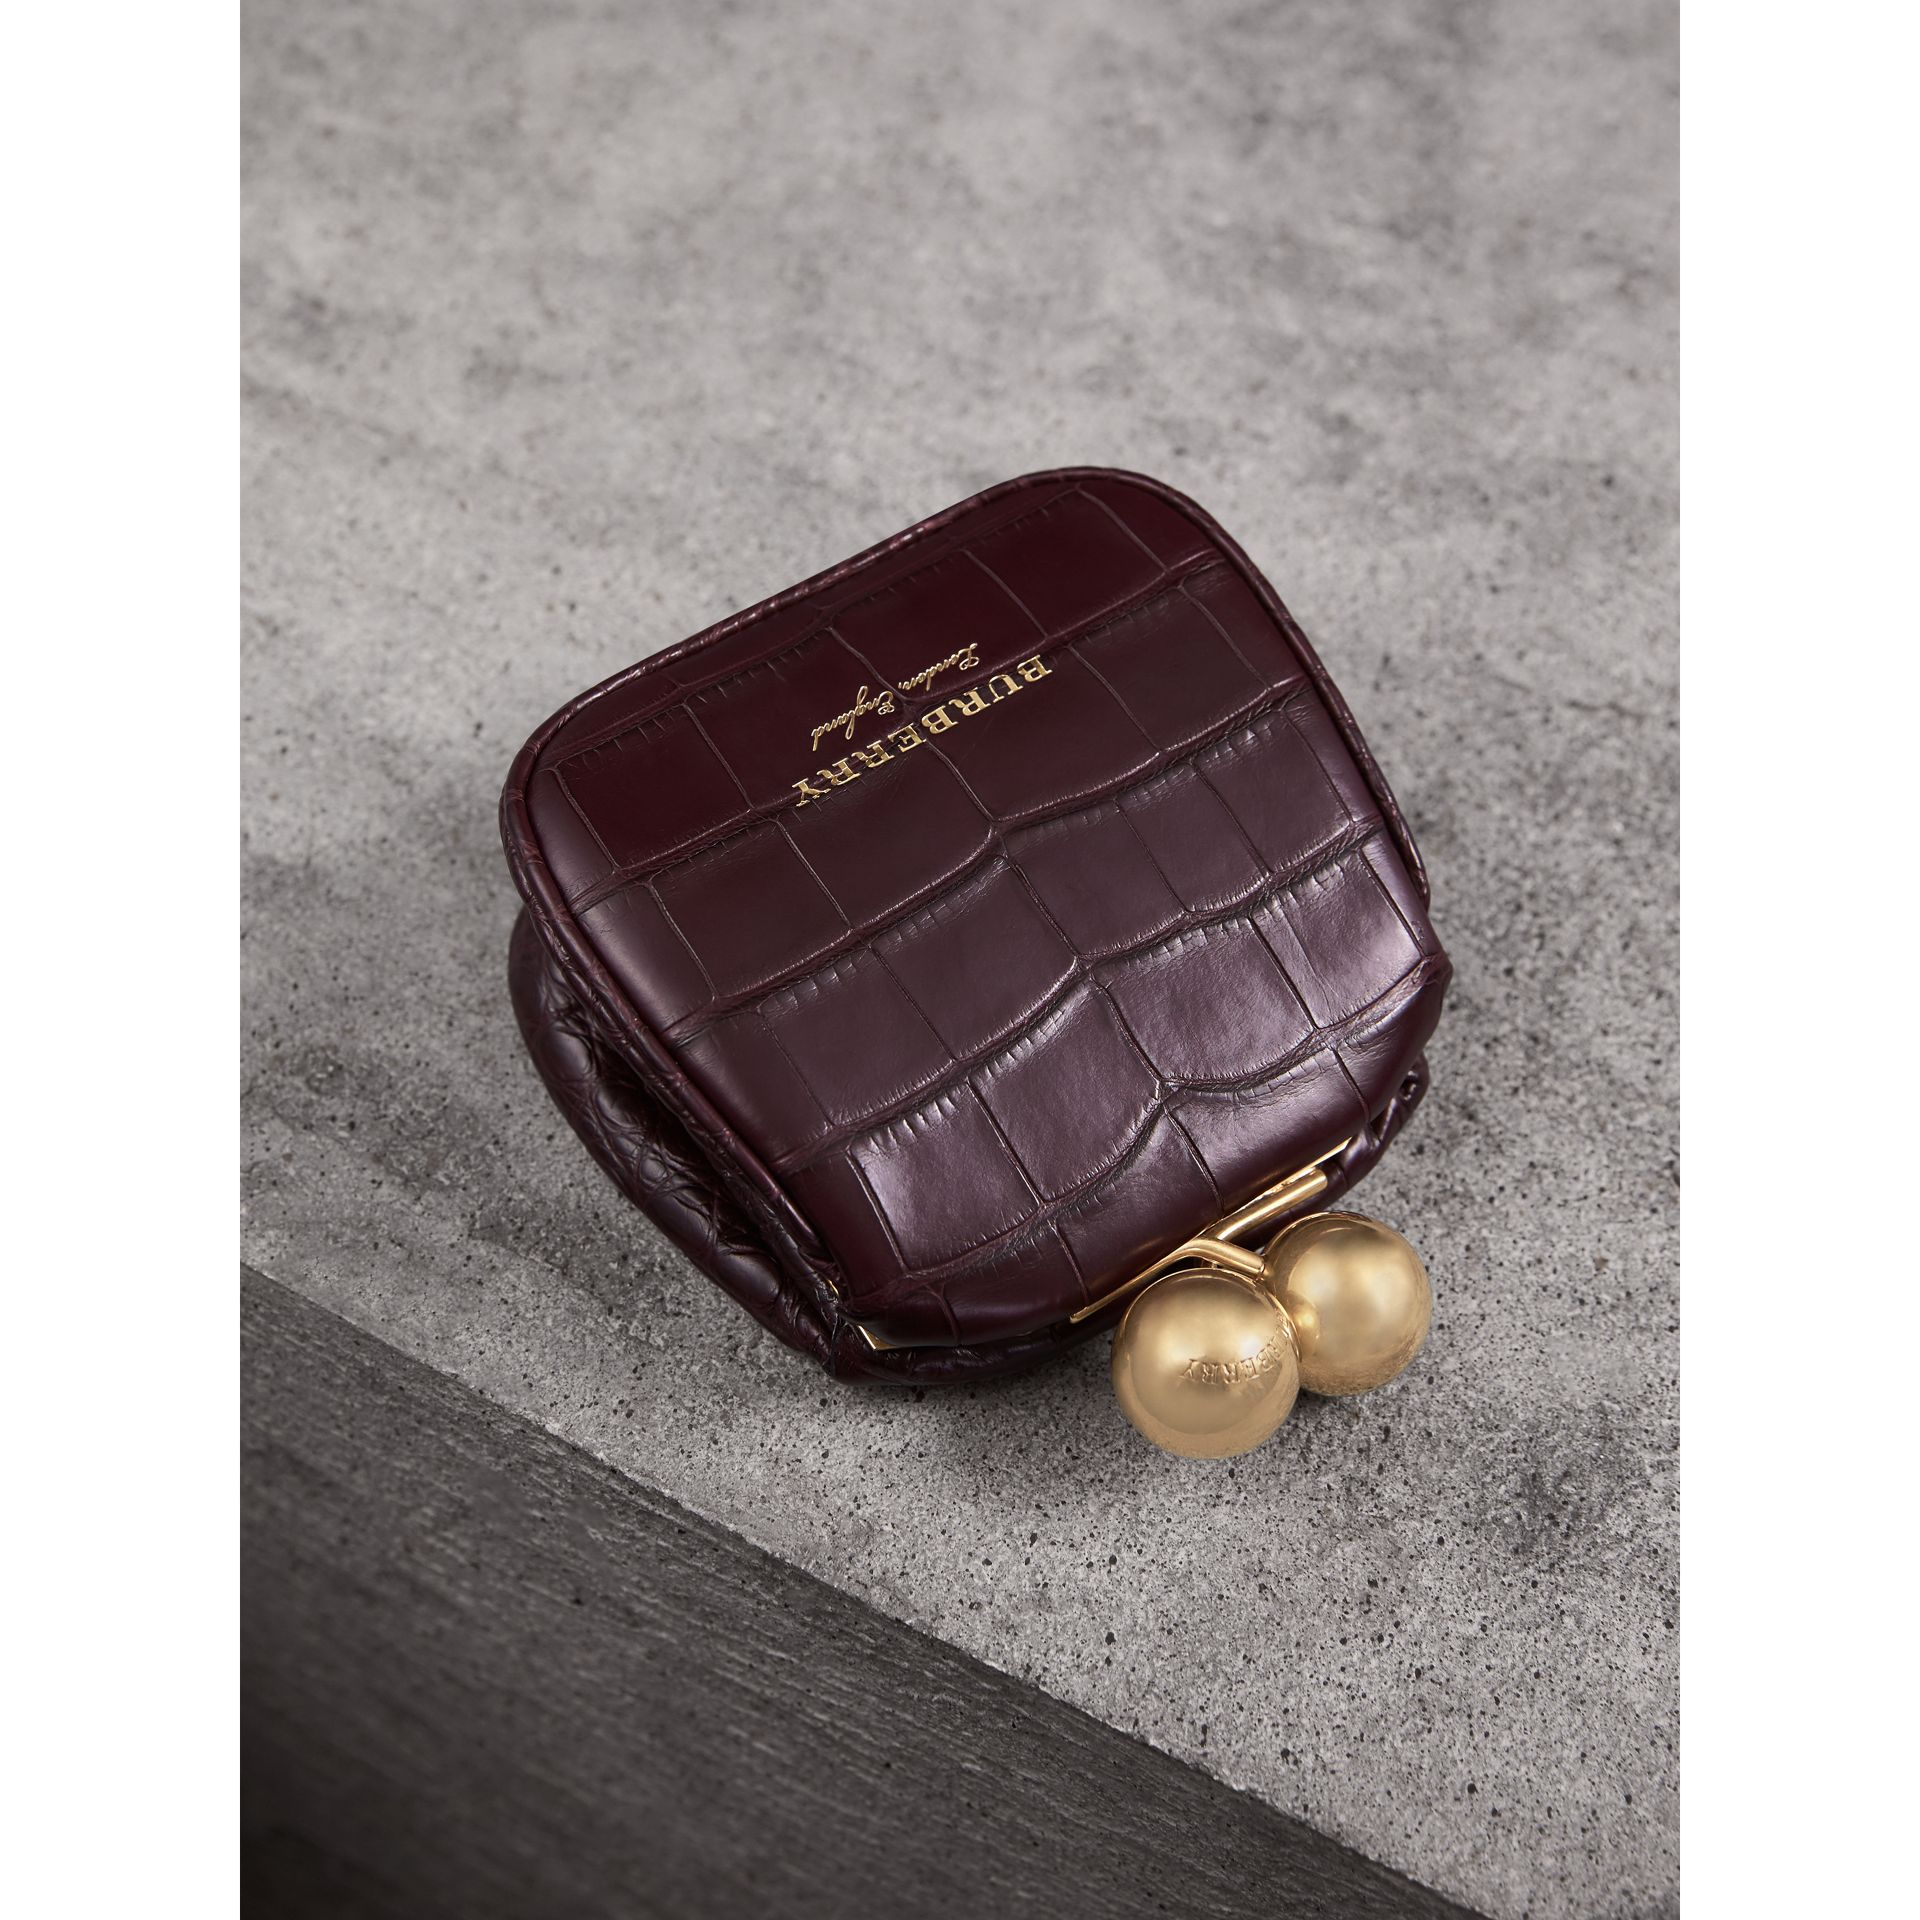 Mini Alligator Metal Frame Clutch Bag in Dark Claret - Women | Burberry United Kingdom - gallery image 3